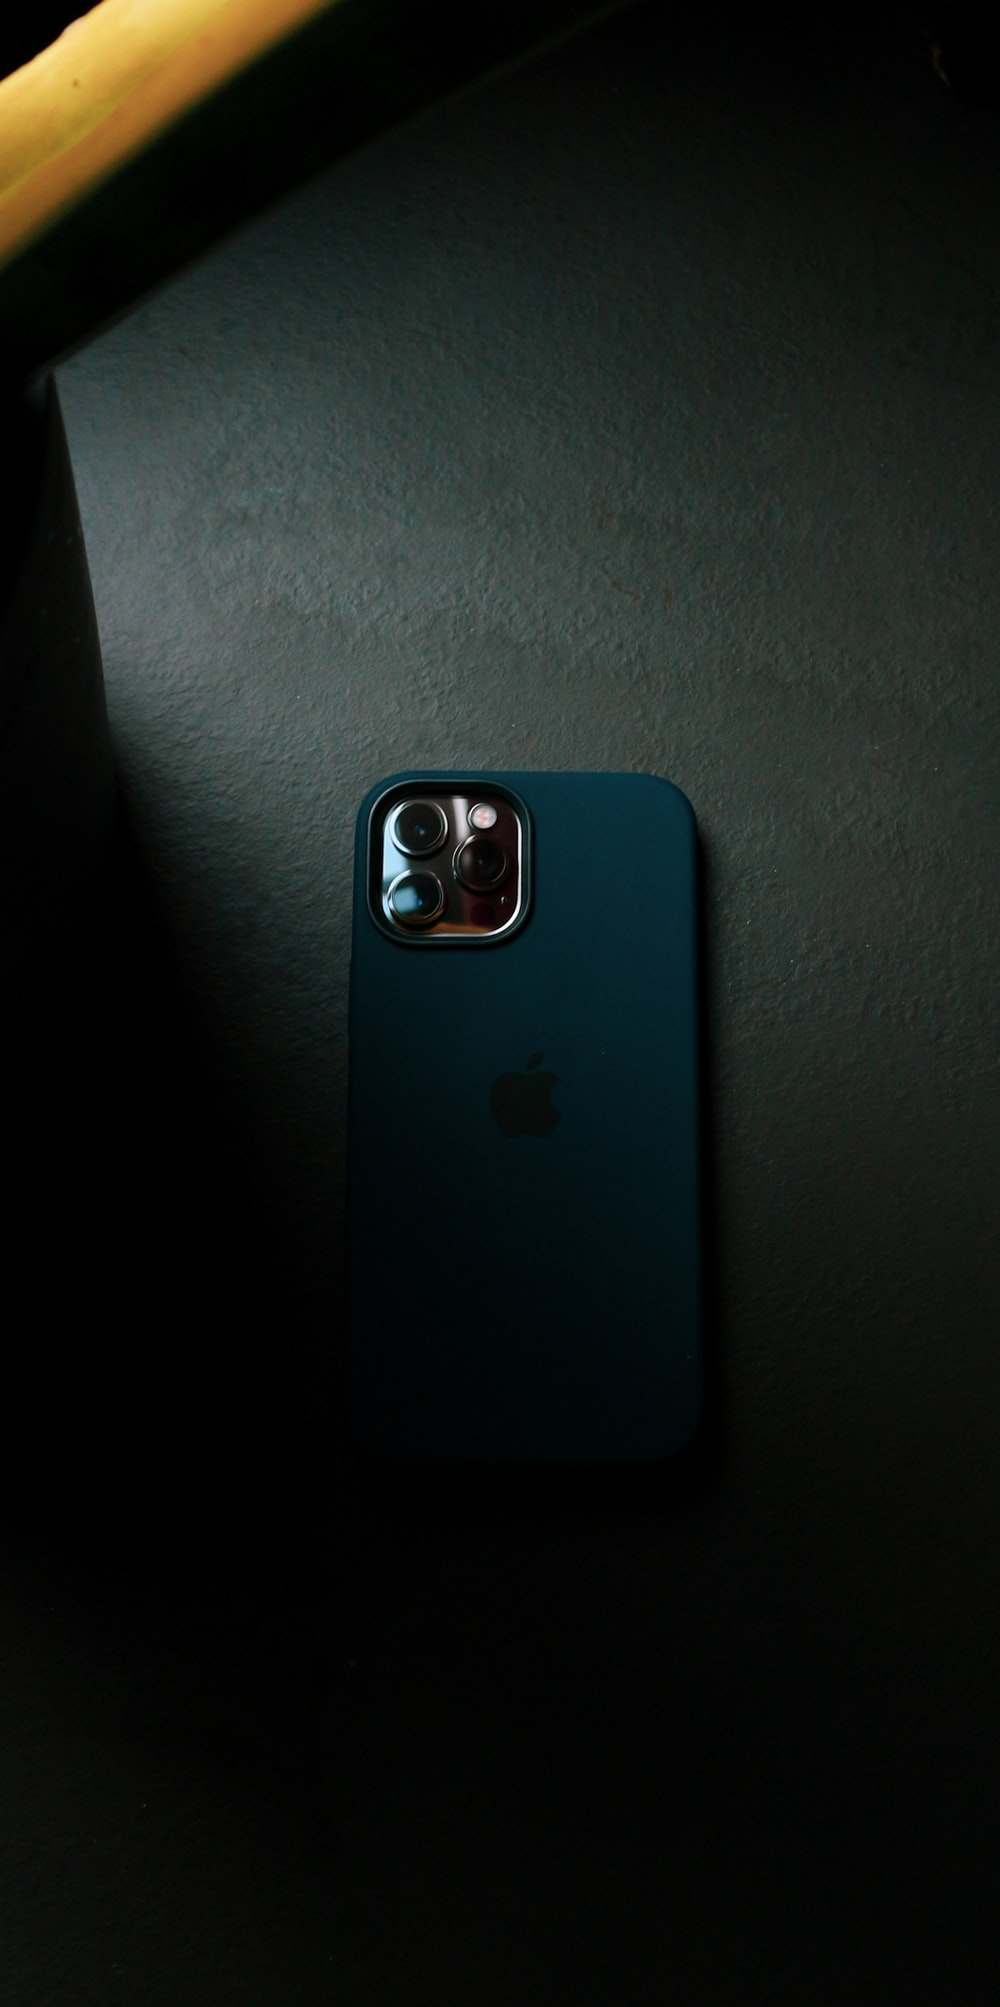 blue iphone case on gray textile